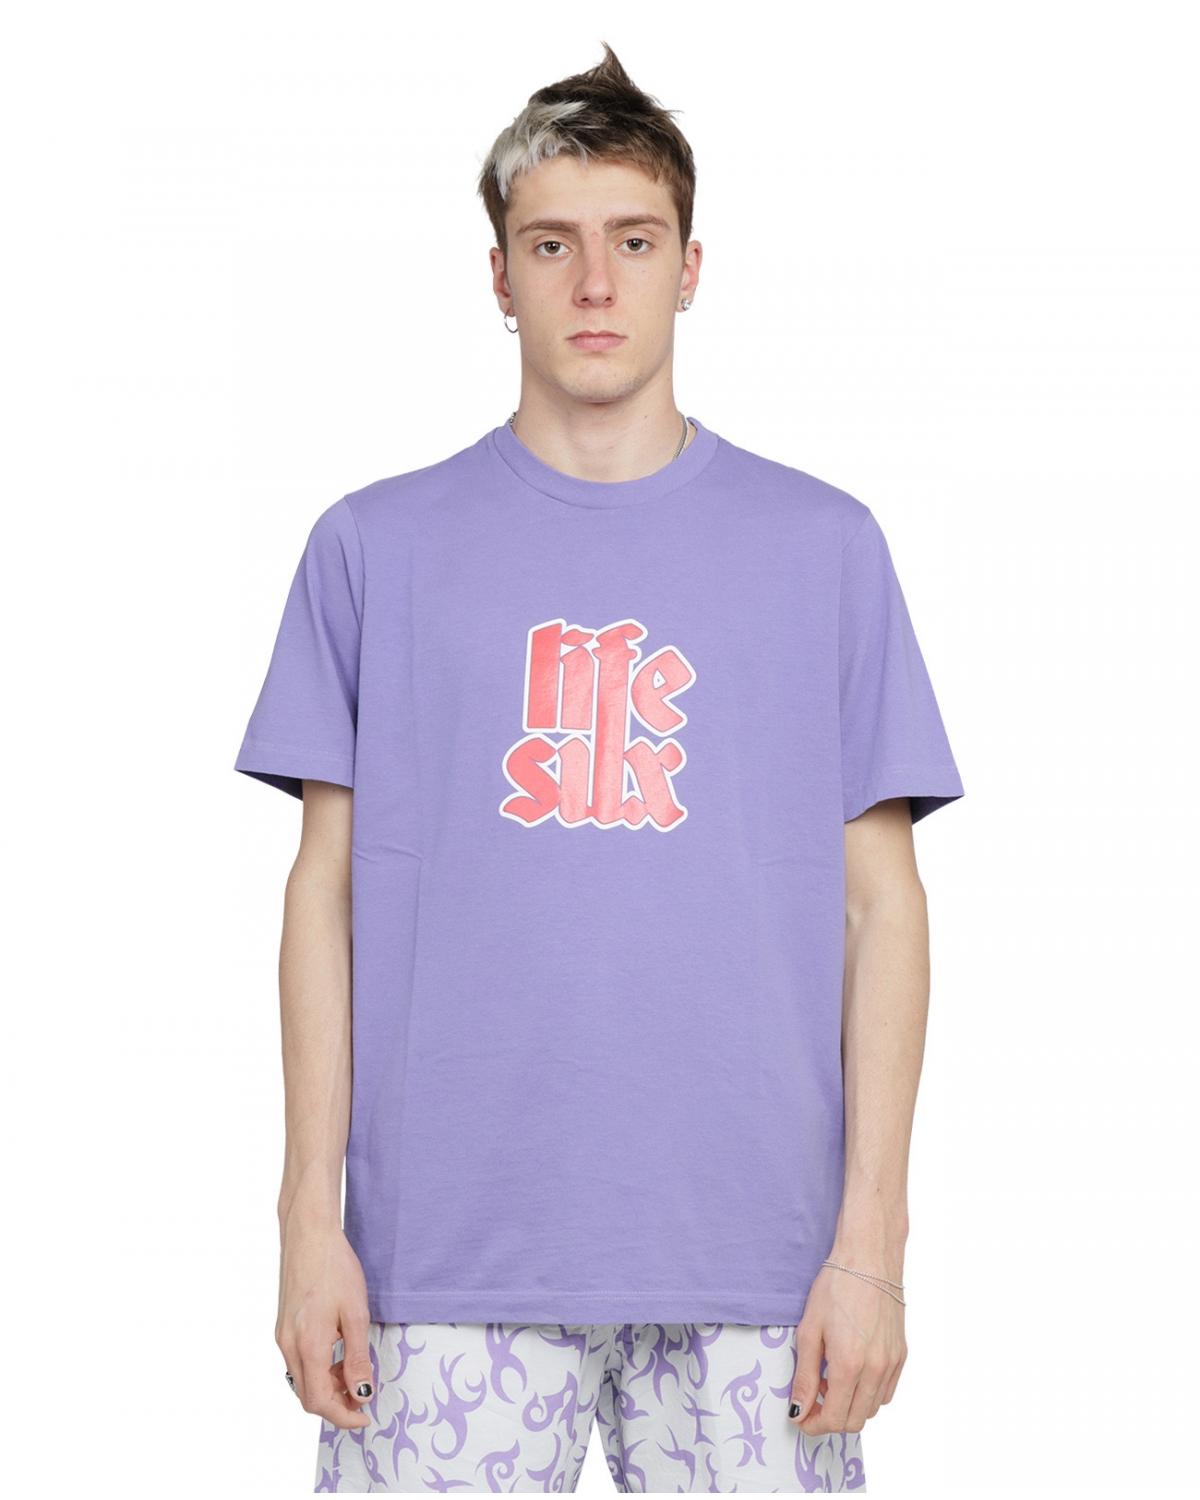 Lifesux purple Lettering tee